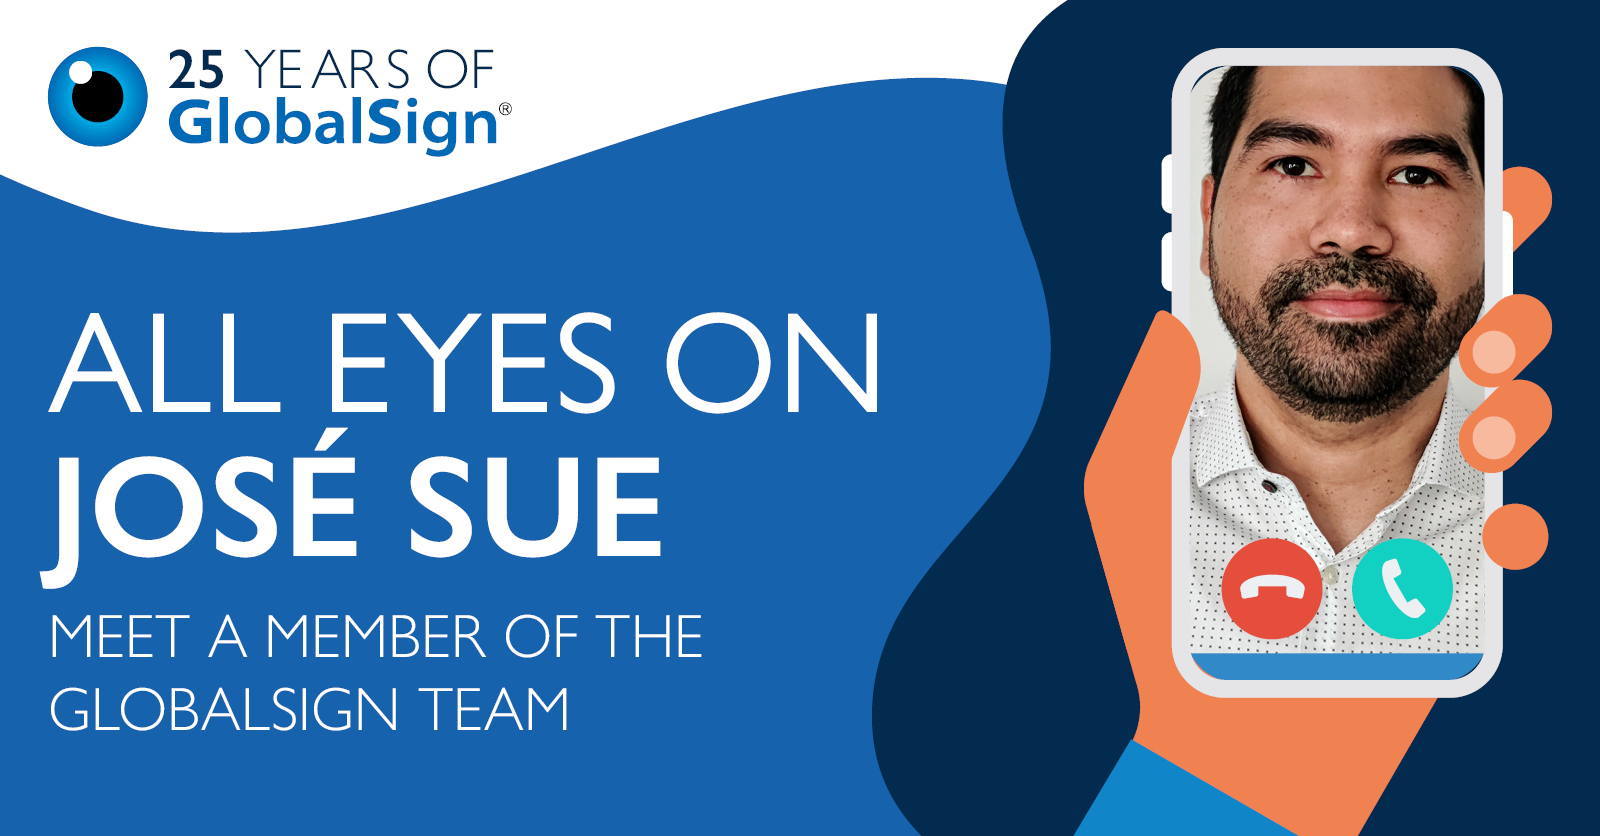 25 Years of GlobalSign - All Eyes on José Sue